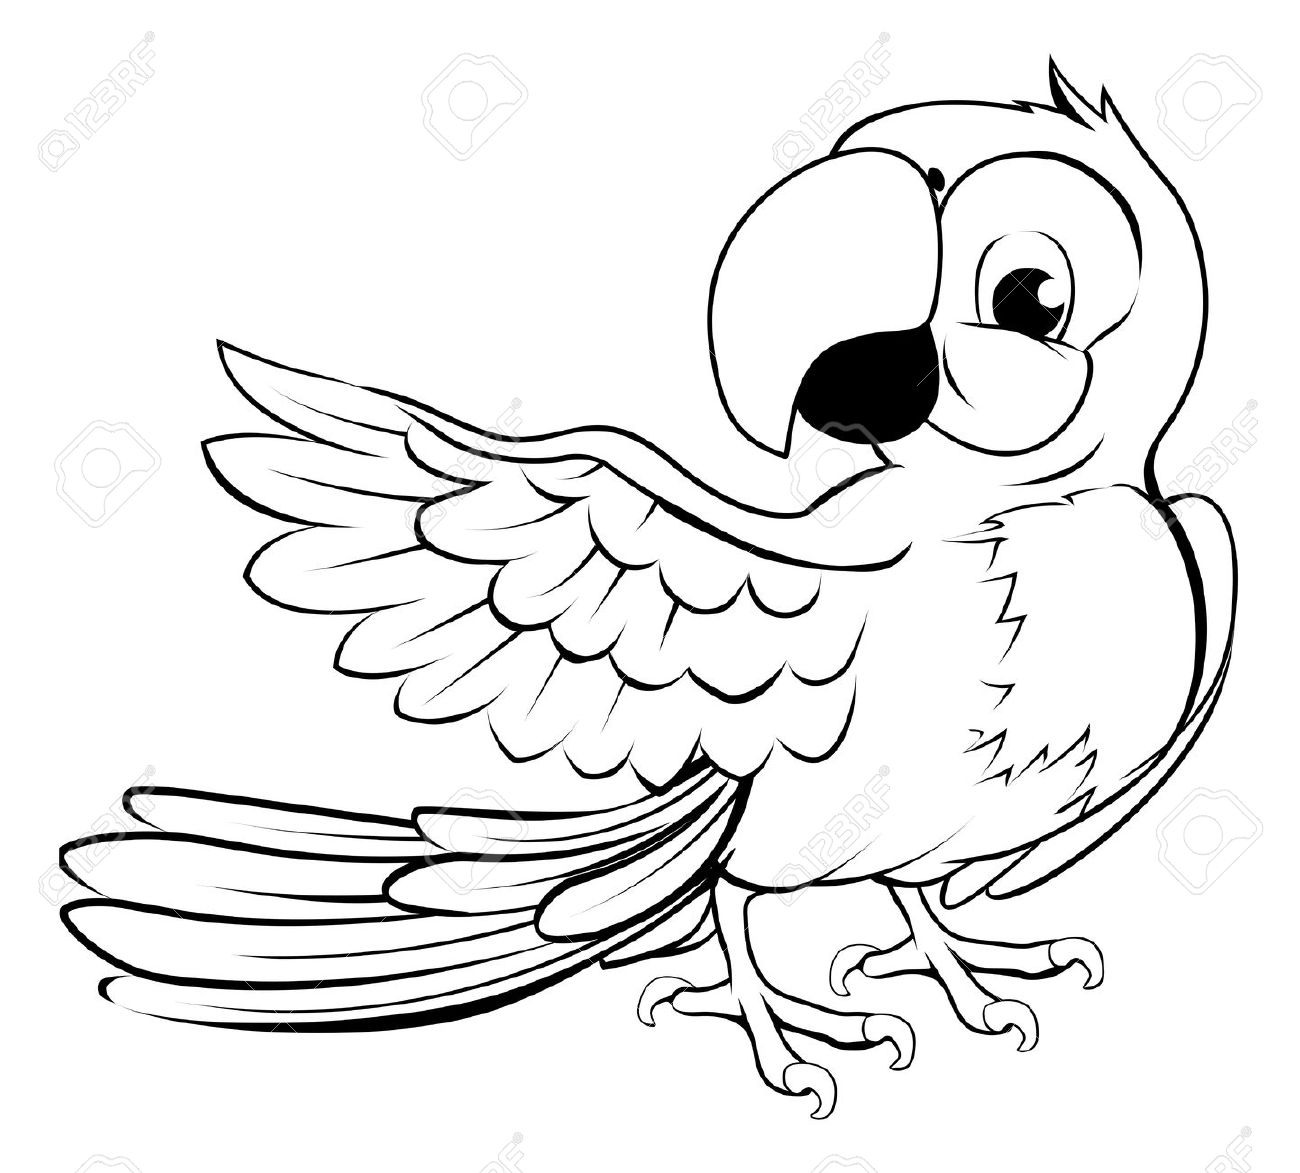 37 Parrot Clipart Black And White